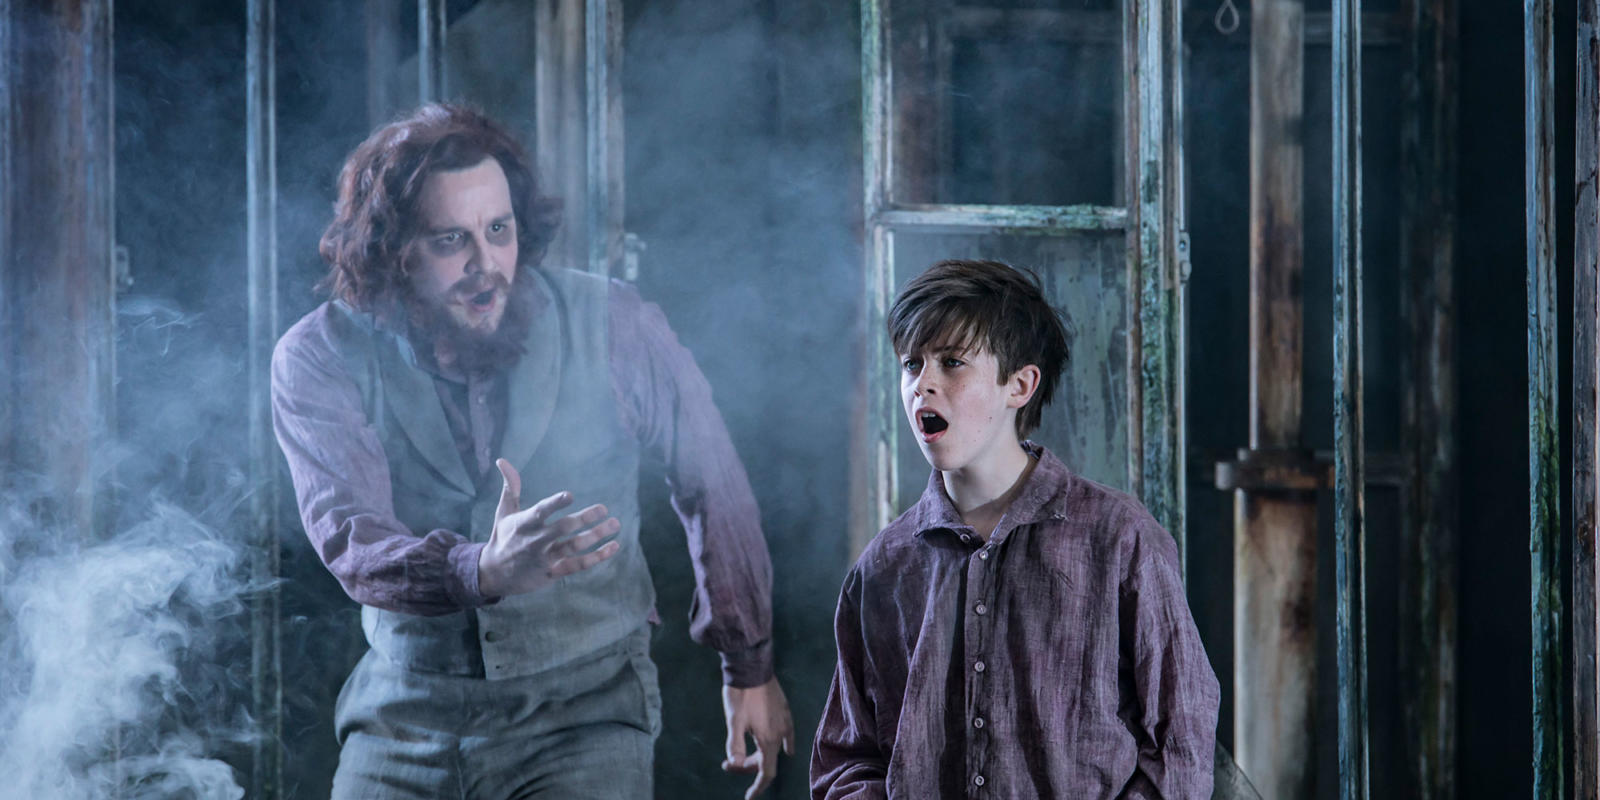 ENO 2017/18 The Turn of the Screw: William Morgan and Sholto McMillan as Peter Quint and Miles. Photo Johan Persson.